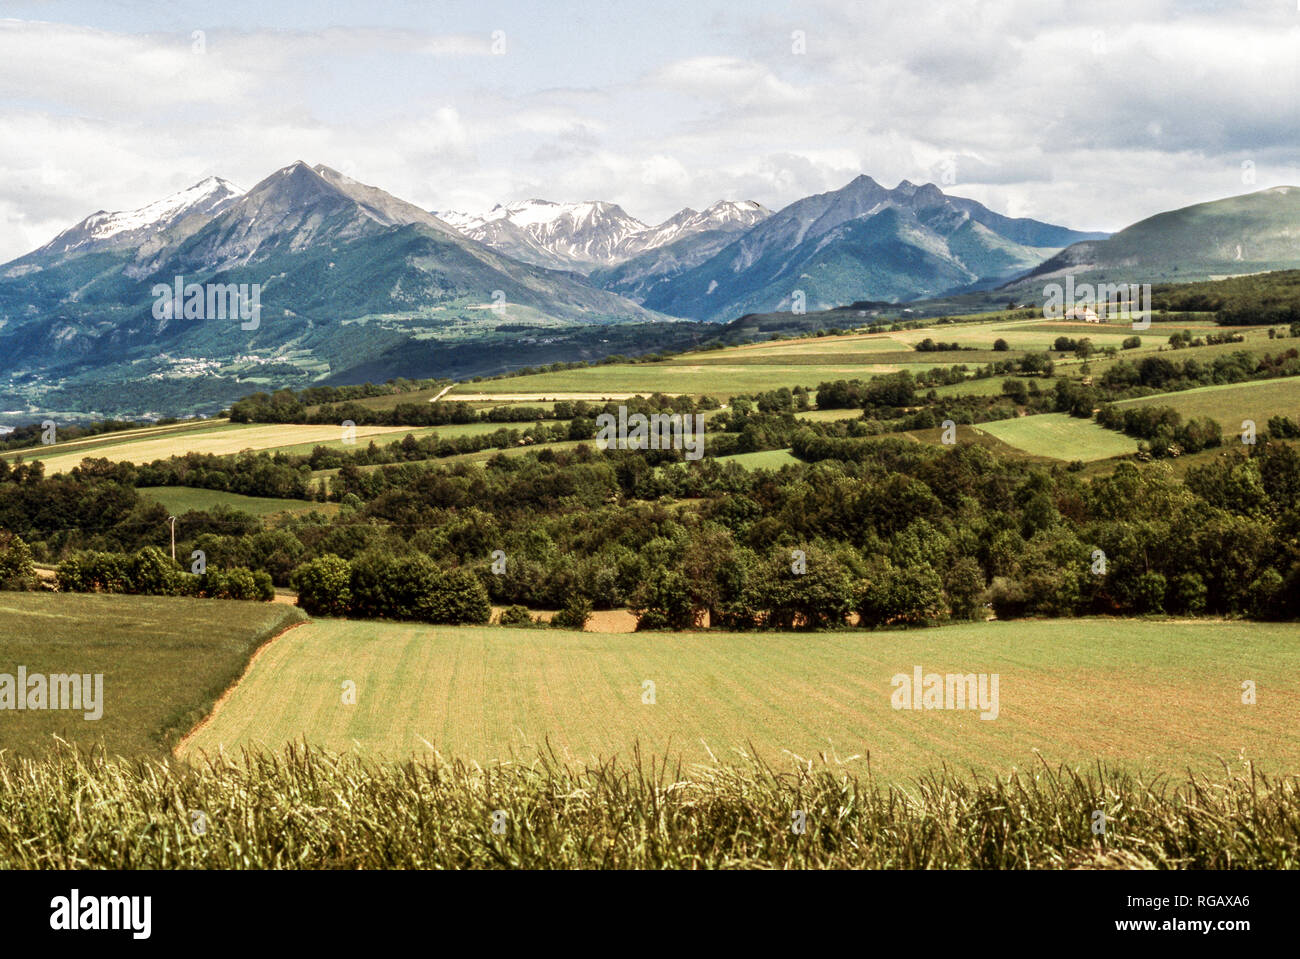 France.Department of Hautes-Alpes.View of the Ecrins National Park from near the town of Gap. - Stock Image